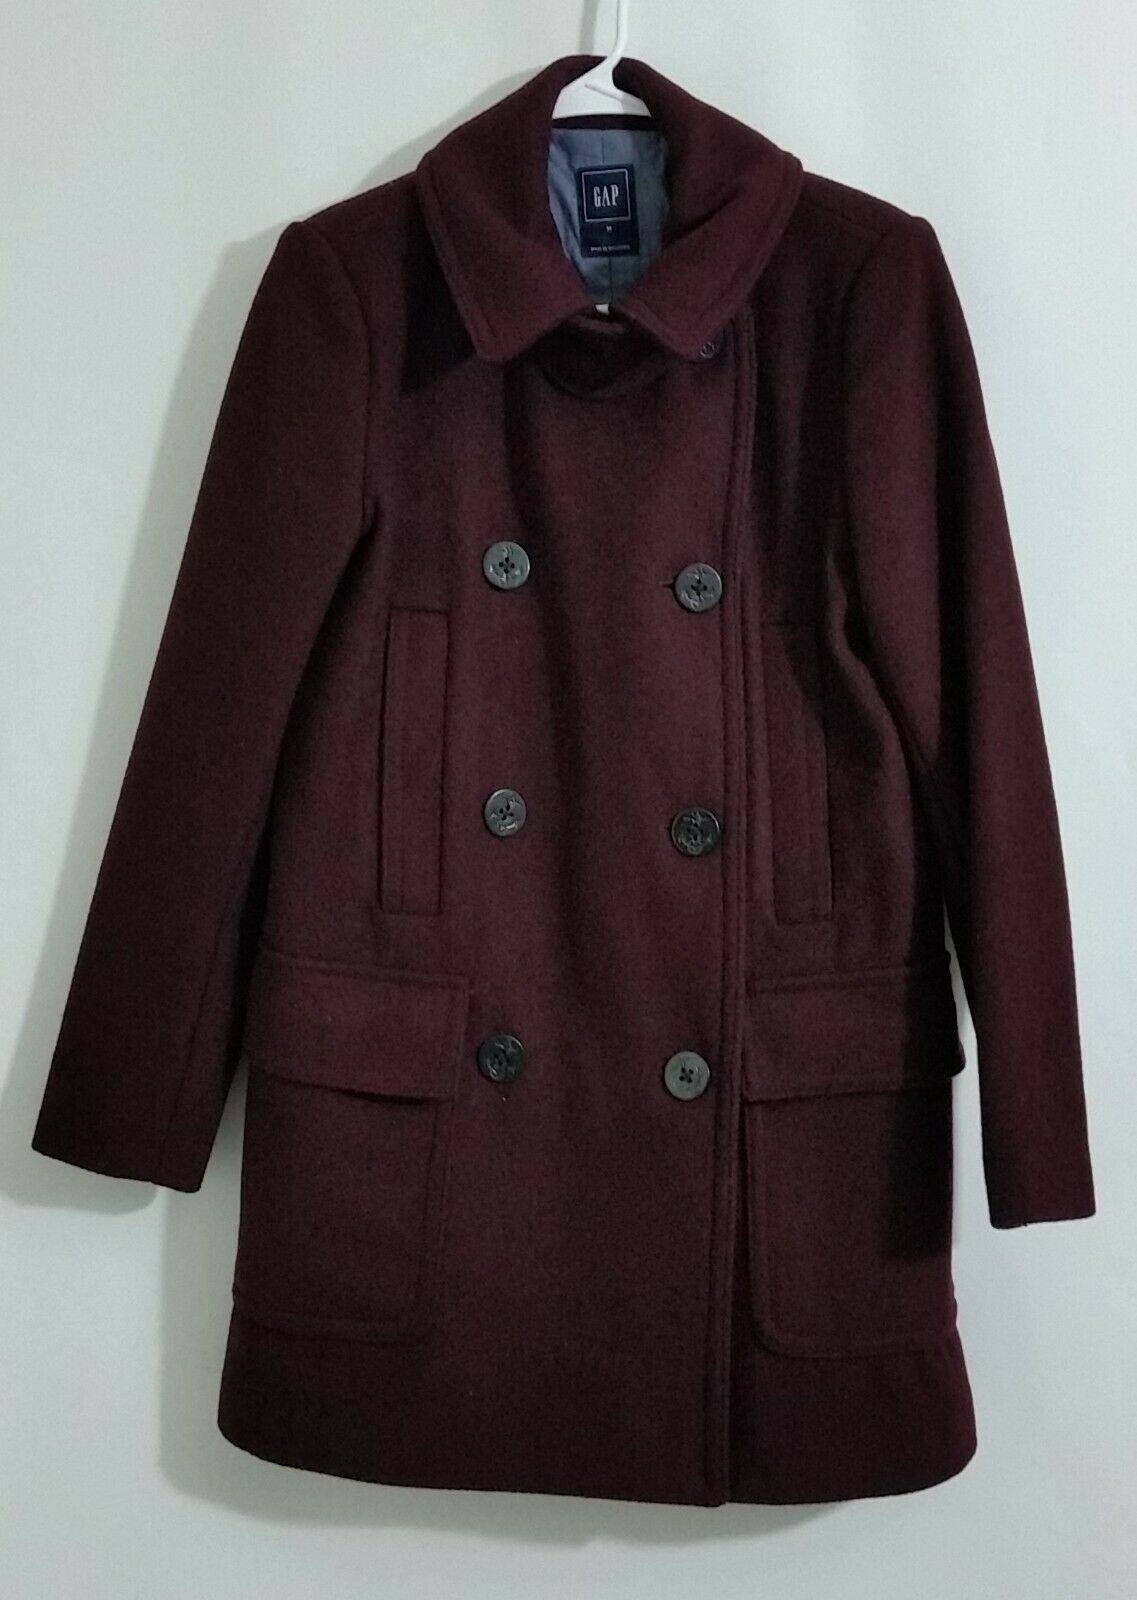 Primary image for GAP Womens Pea Coat Peacoat Jacket Burgundy Wool Blend Button Size M